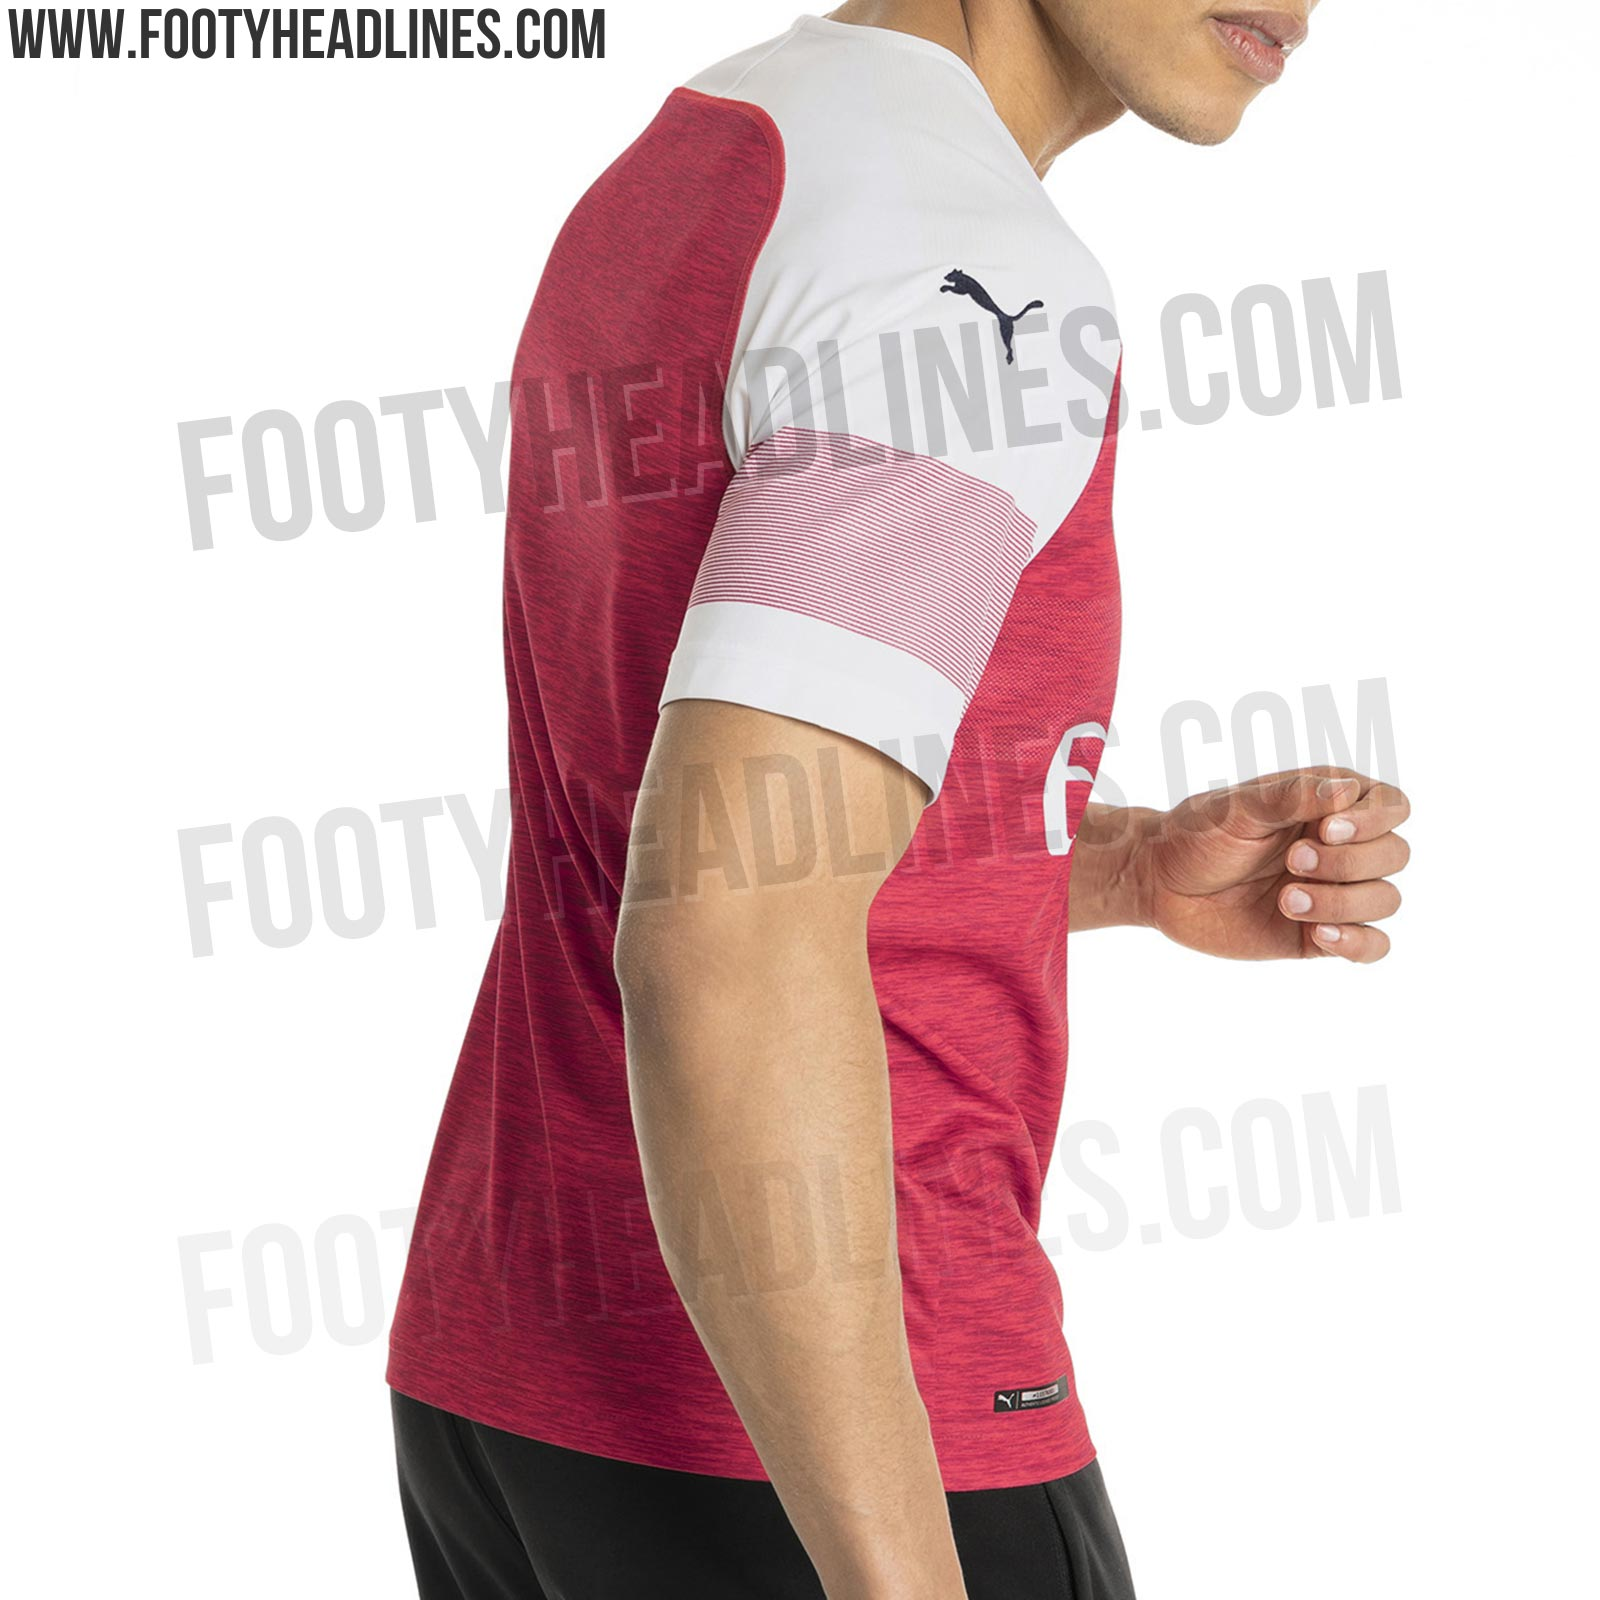 arsenal-18-19-home-kit-5.jpg